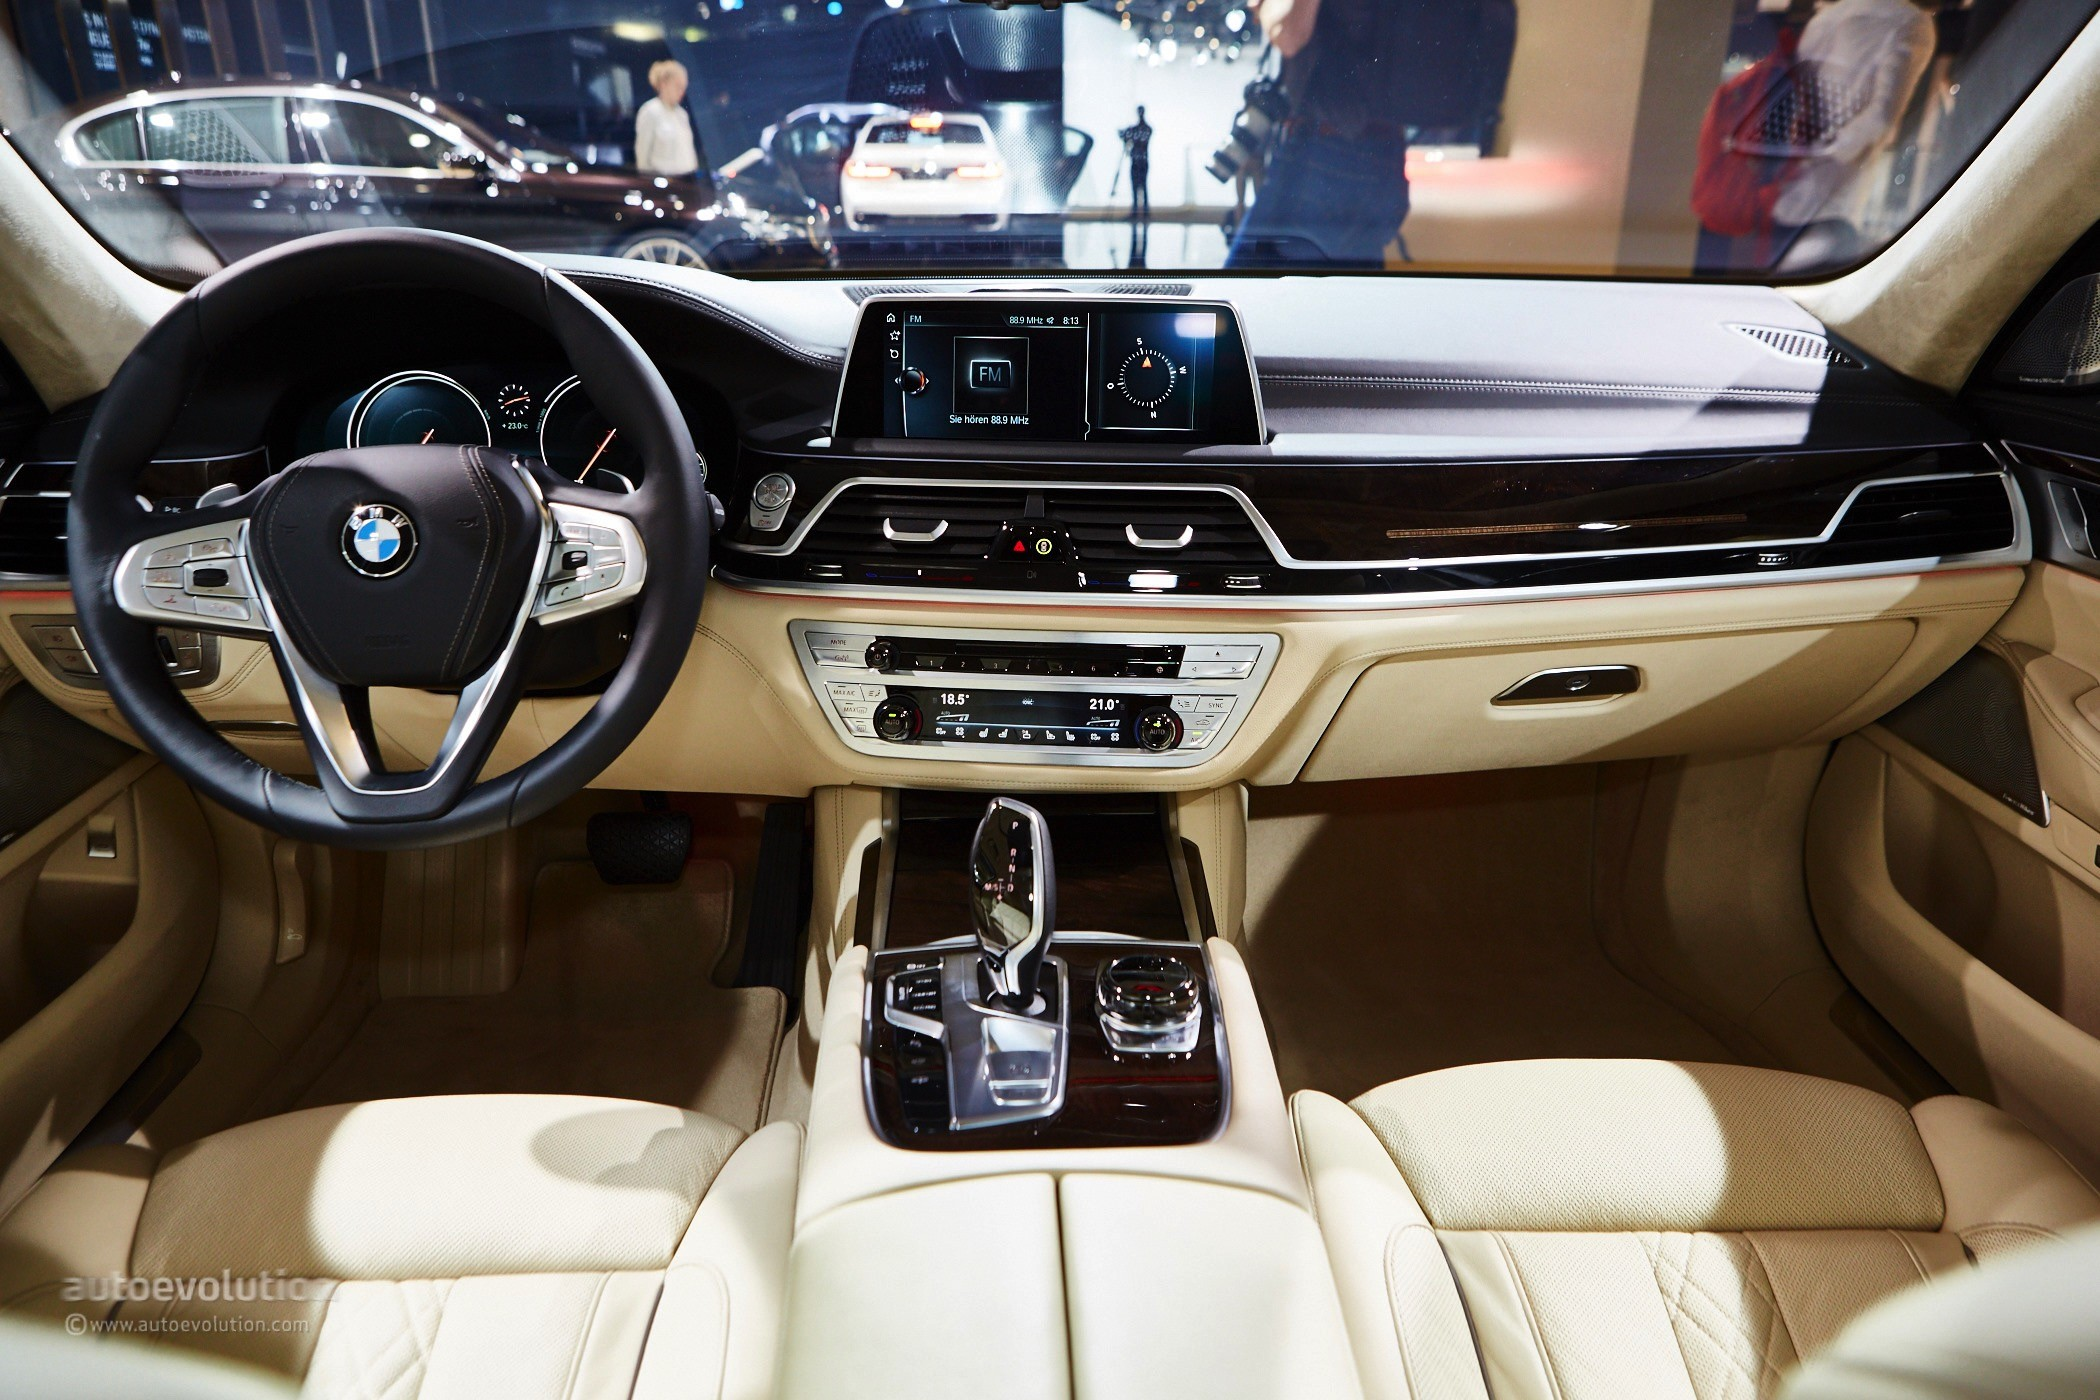 New Bmw 7 Series >> 2016 BMW 7 Series Shows Up in the Metal at Frankfurt, Celebrates World Debut - autoevolution